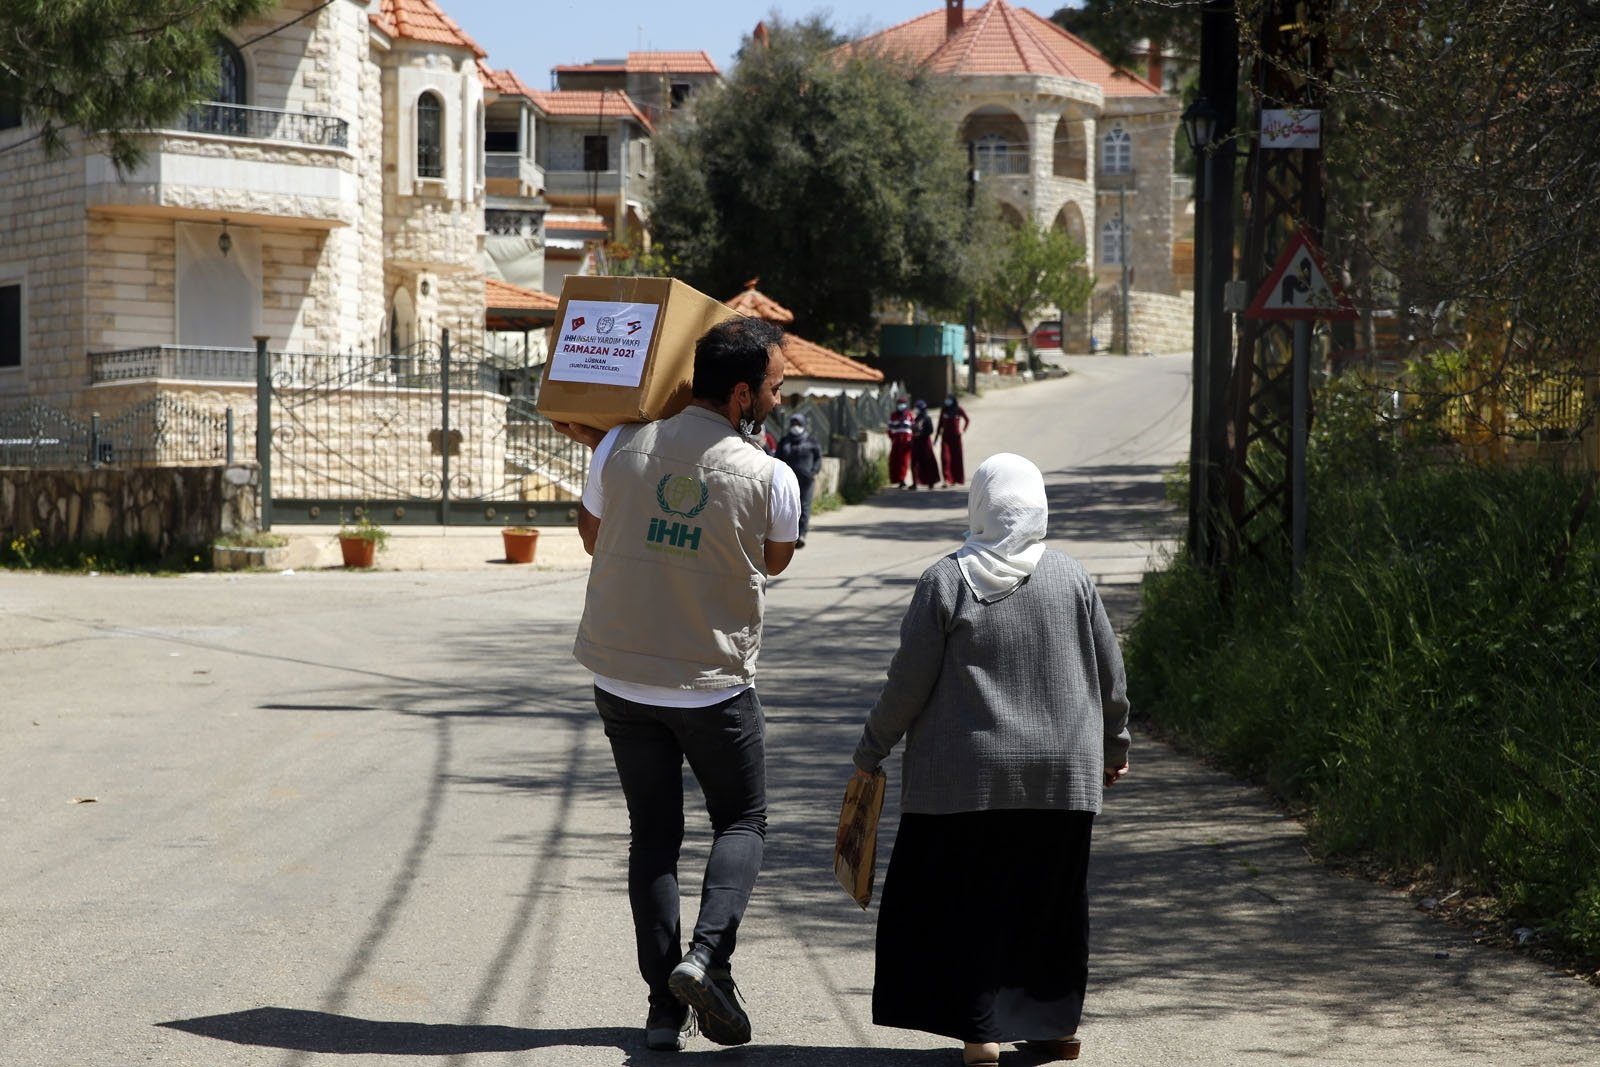 A volunteer from the Humanitarian Aid Foundation (IHH) carries an aid package delivered to an elderly woman, in Beirut, Lebanon, May 7, 2021. (AA PHOTO)